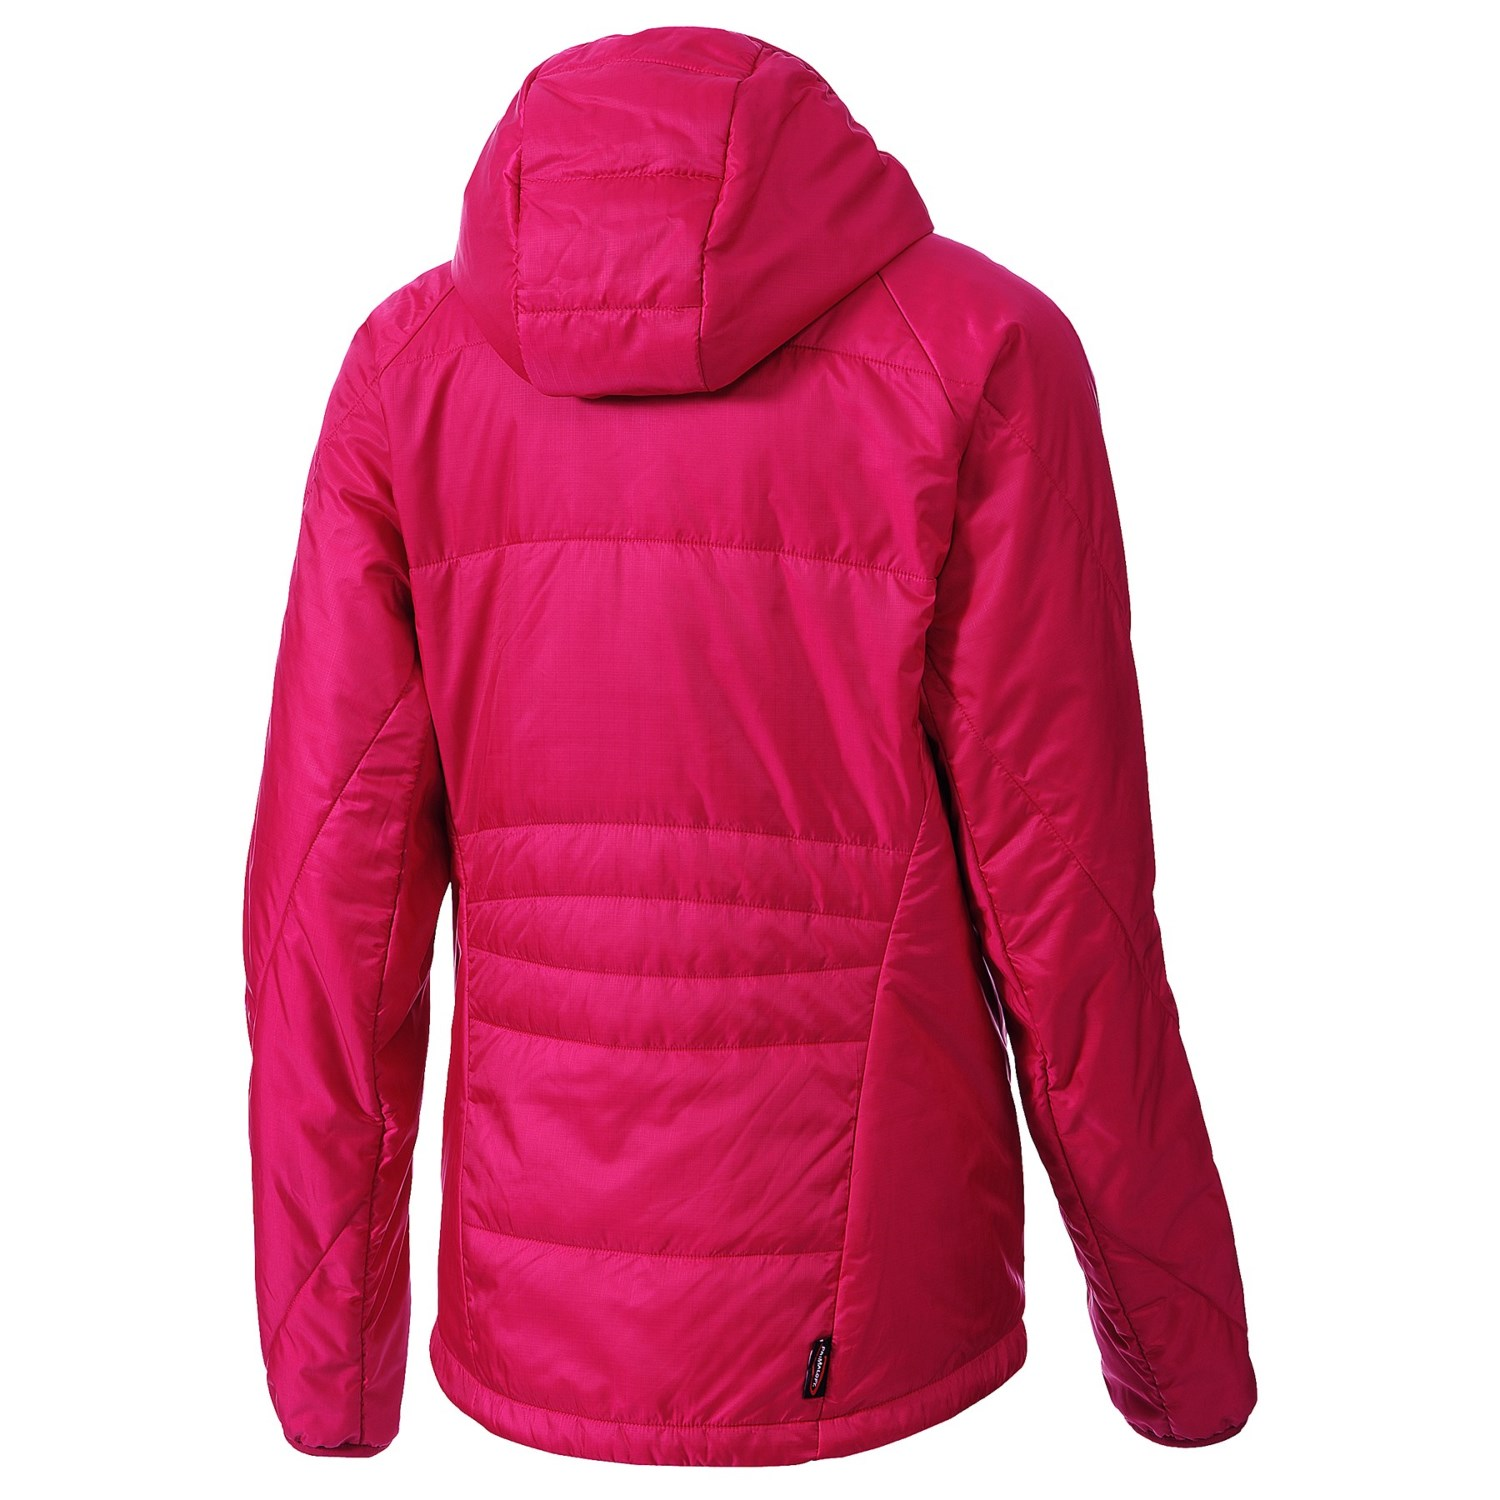 adidas terrex swift primaloft hooded jacket for women. Black Bedroom Furniture Sets. Home Design Ideas